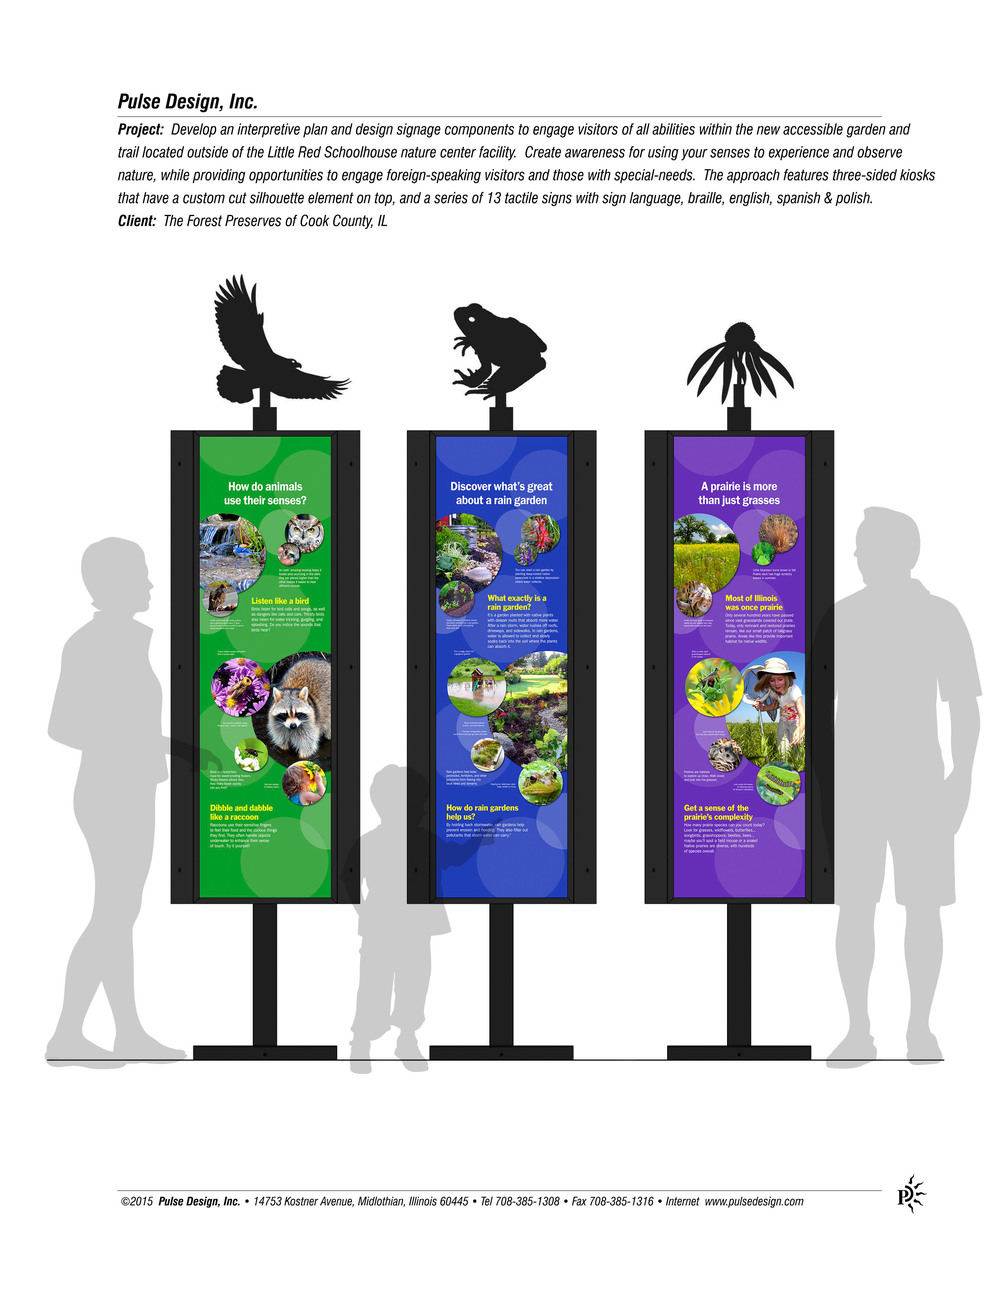 LittleRedSchoolhouse-Trail-Kiosks-w-People-Pulse-Design-Inc.jpg